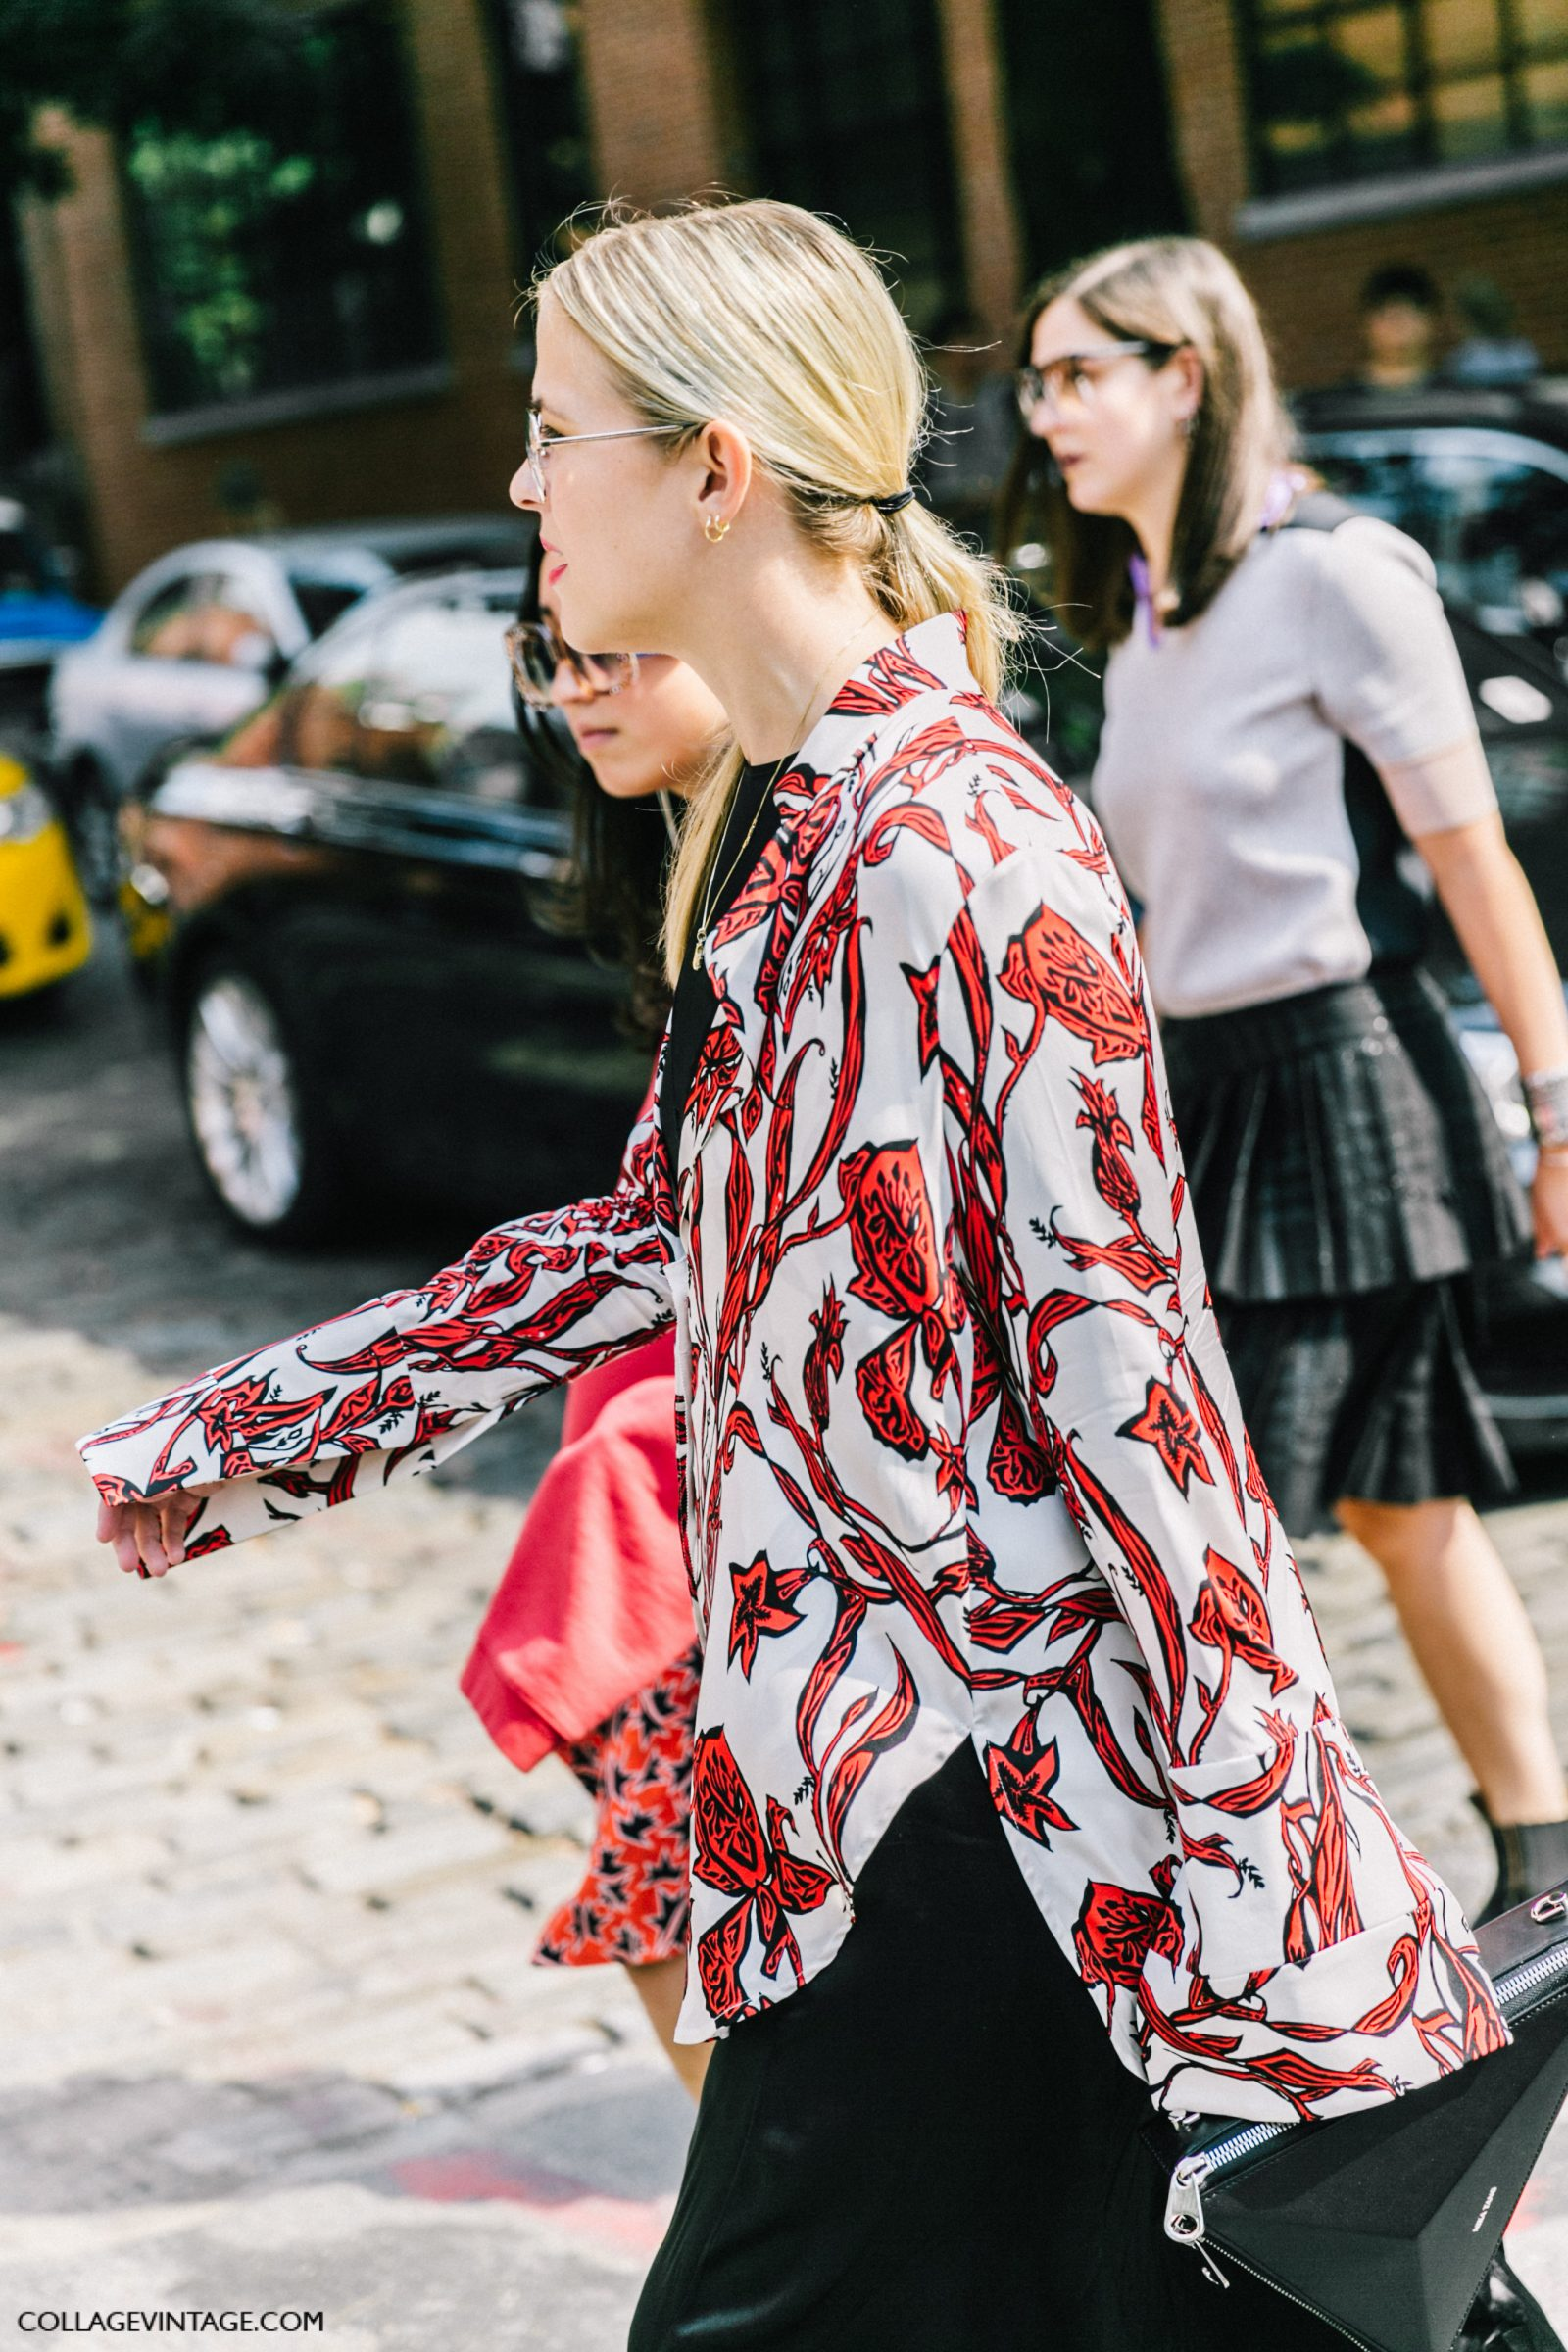 nyfw-new_york_fashion_week_ss17-street_style-outfits-collage_vintage-39